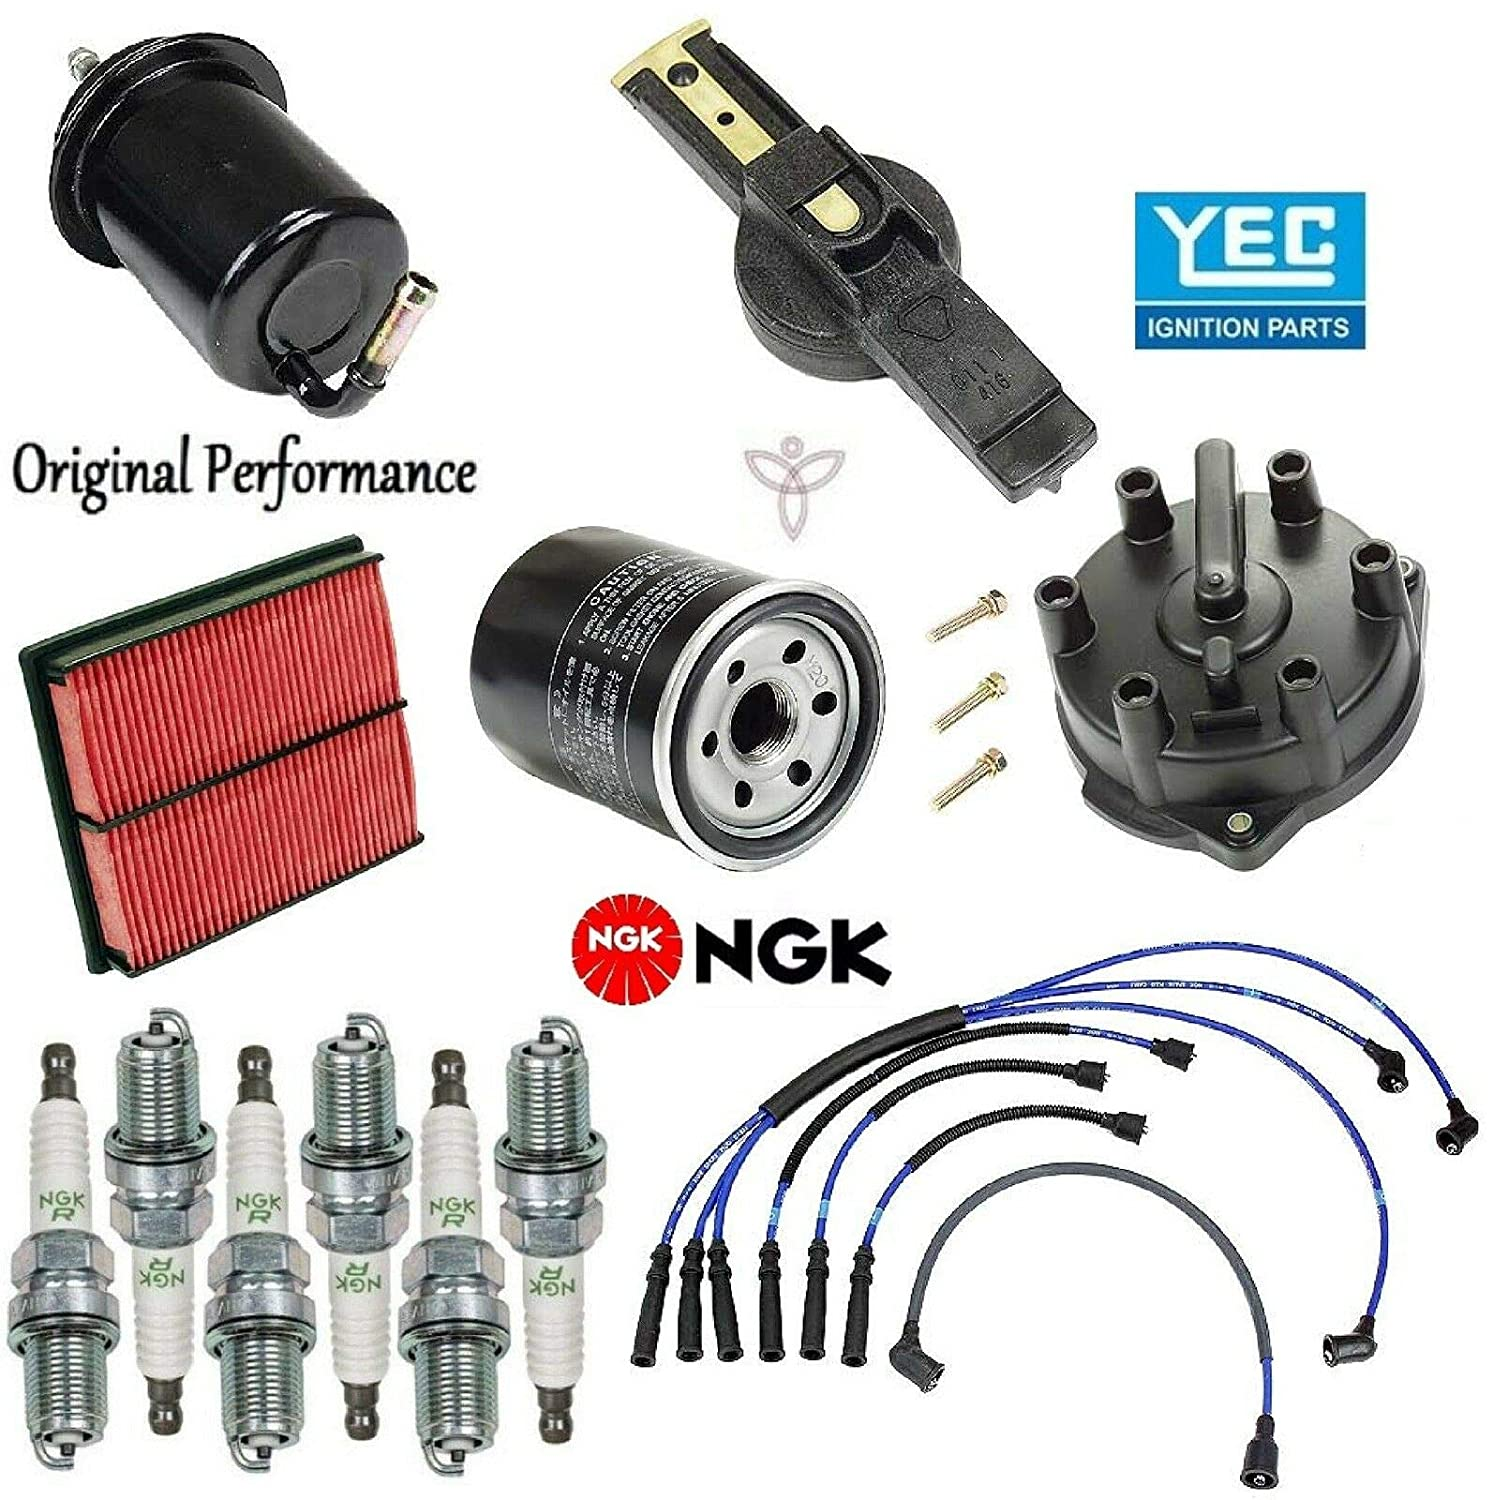 Tune Up Kit Filters Cap Rotor Plugs Wire for Mazda MPV V6 3.0L 1996-1998